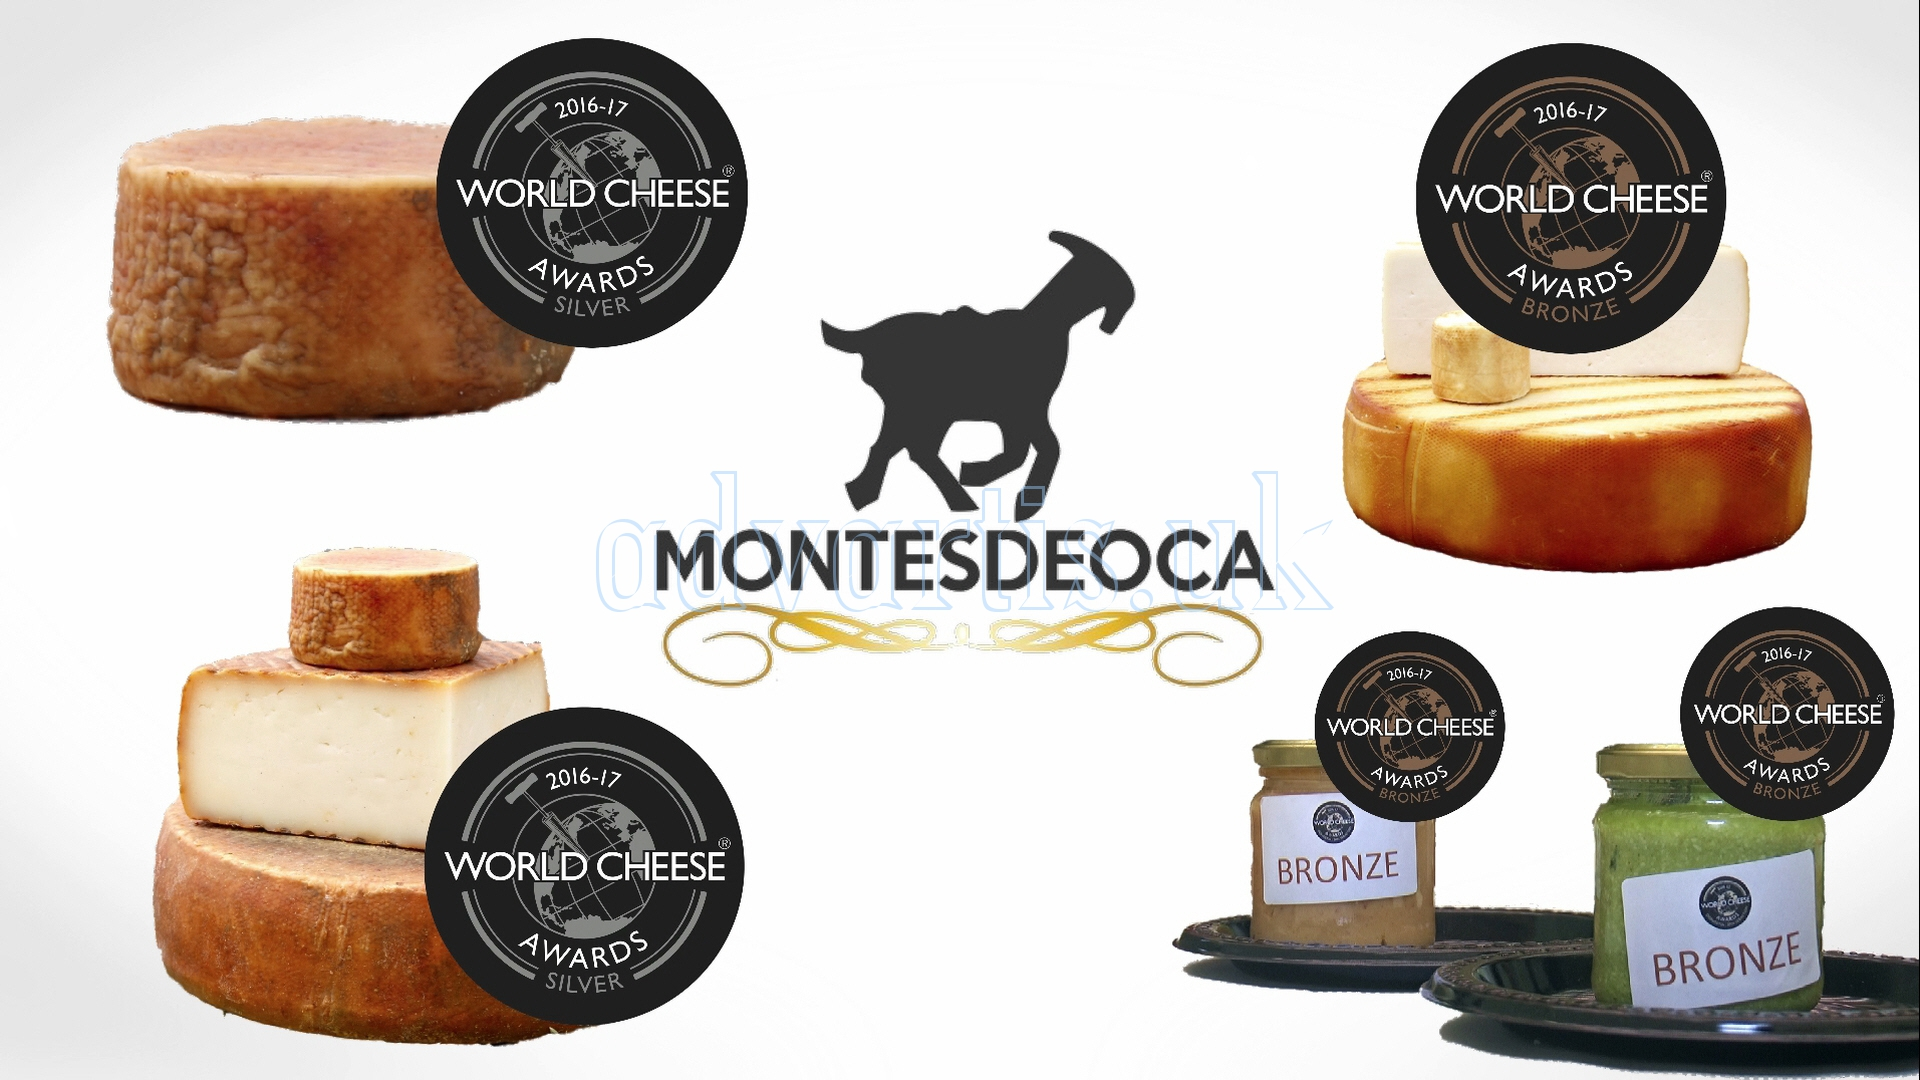 The Montesdeoca Artisan Cheese Factory. Km. 44 TF-82, Tijoco Bajo – S/C de Tenerife